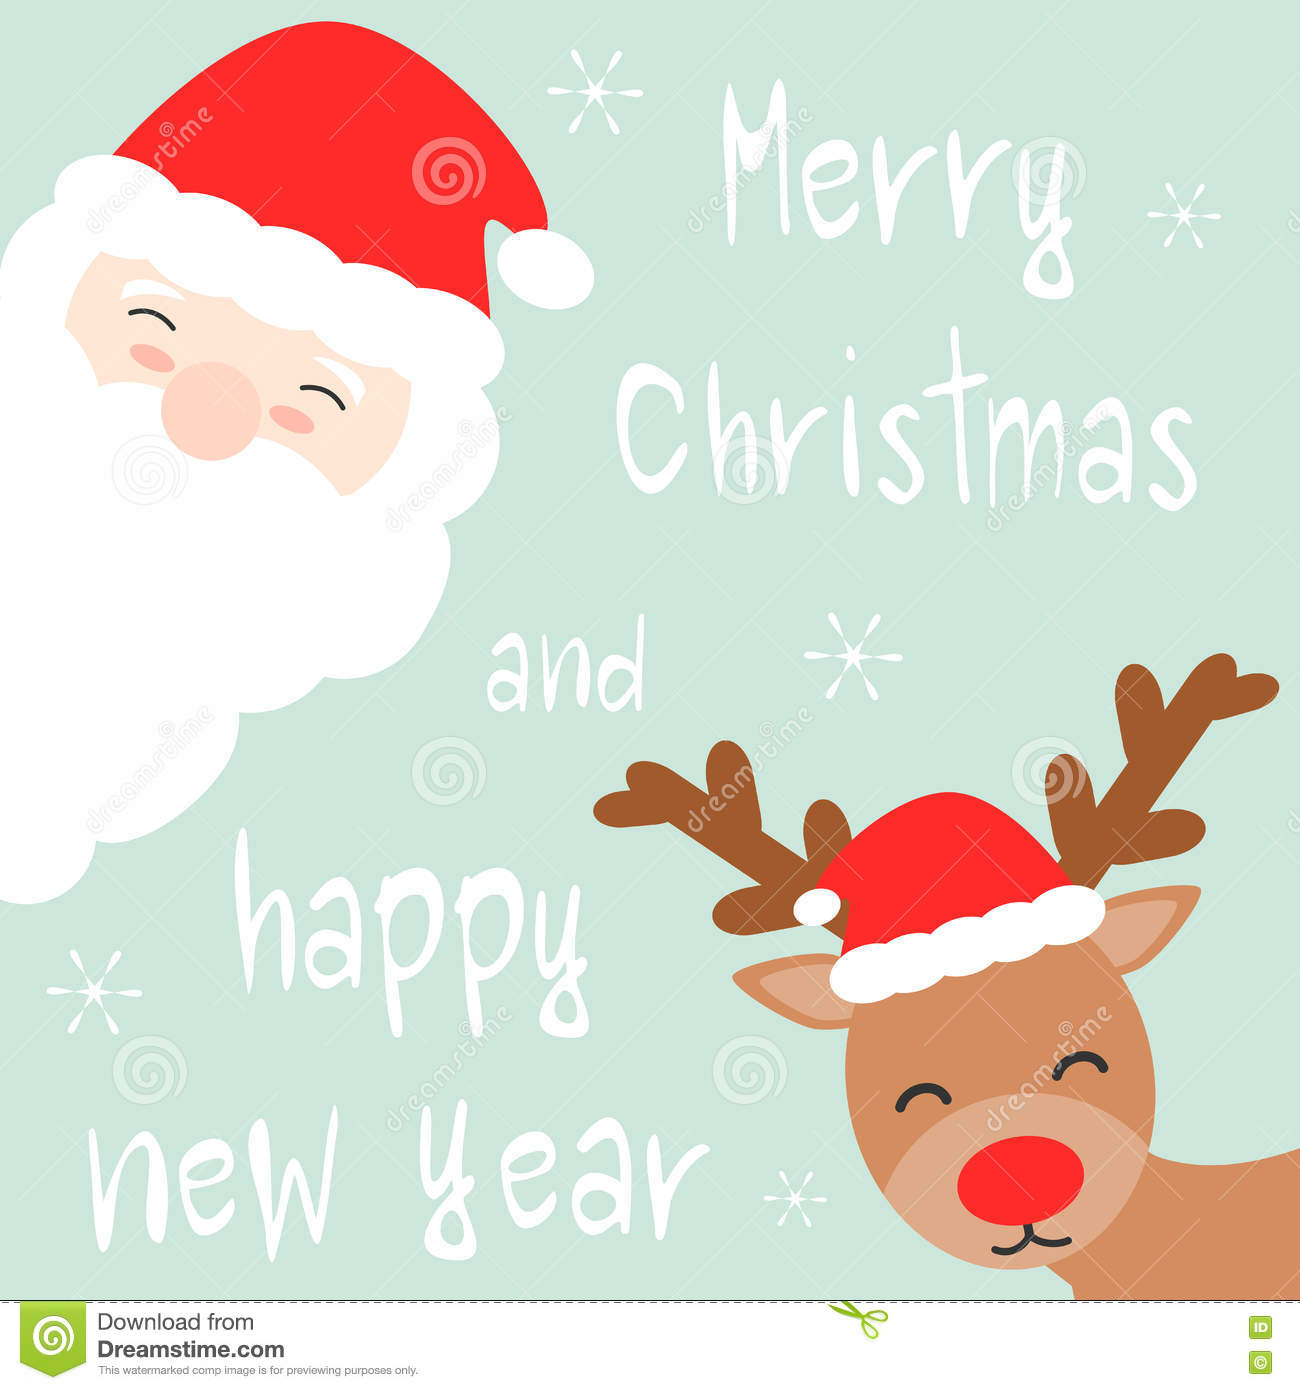 Carte Cadeau Wish Cute Cartoon Hand Drawn Merry Christmas And Happy New Year